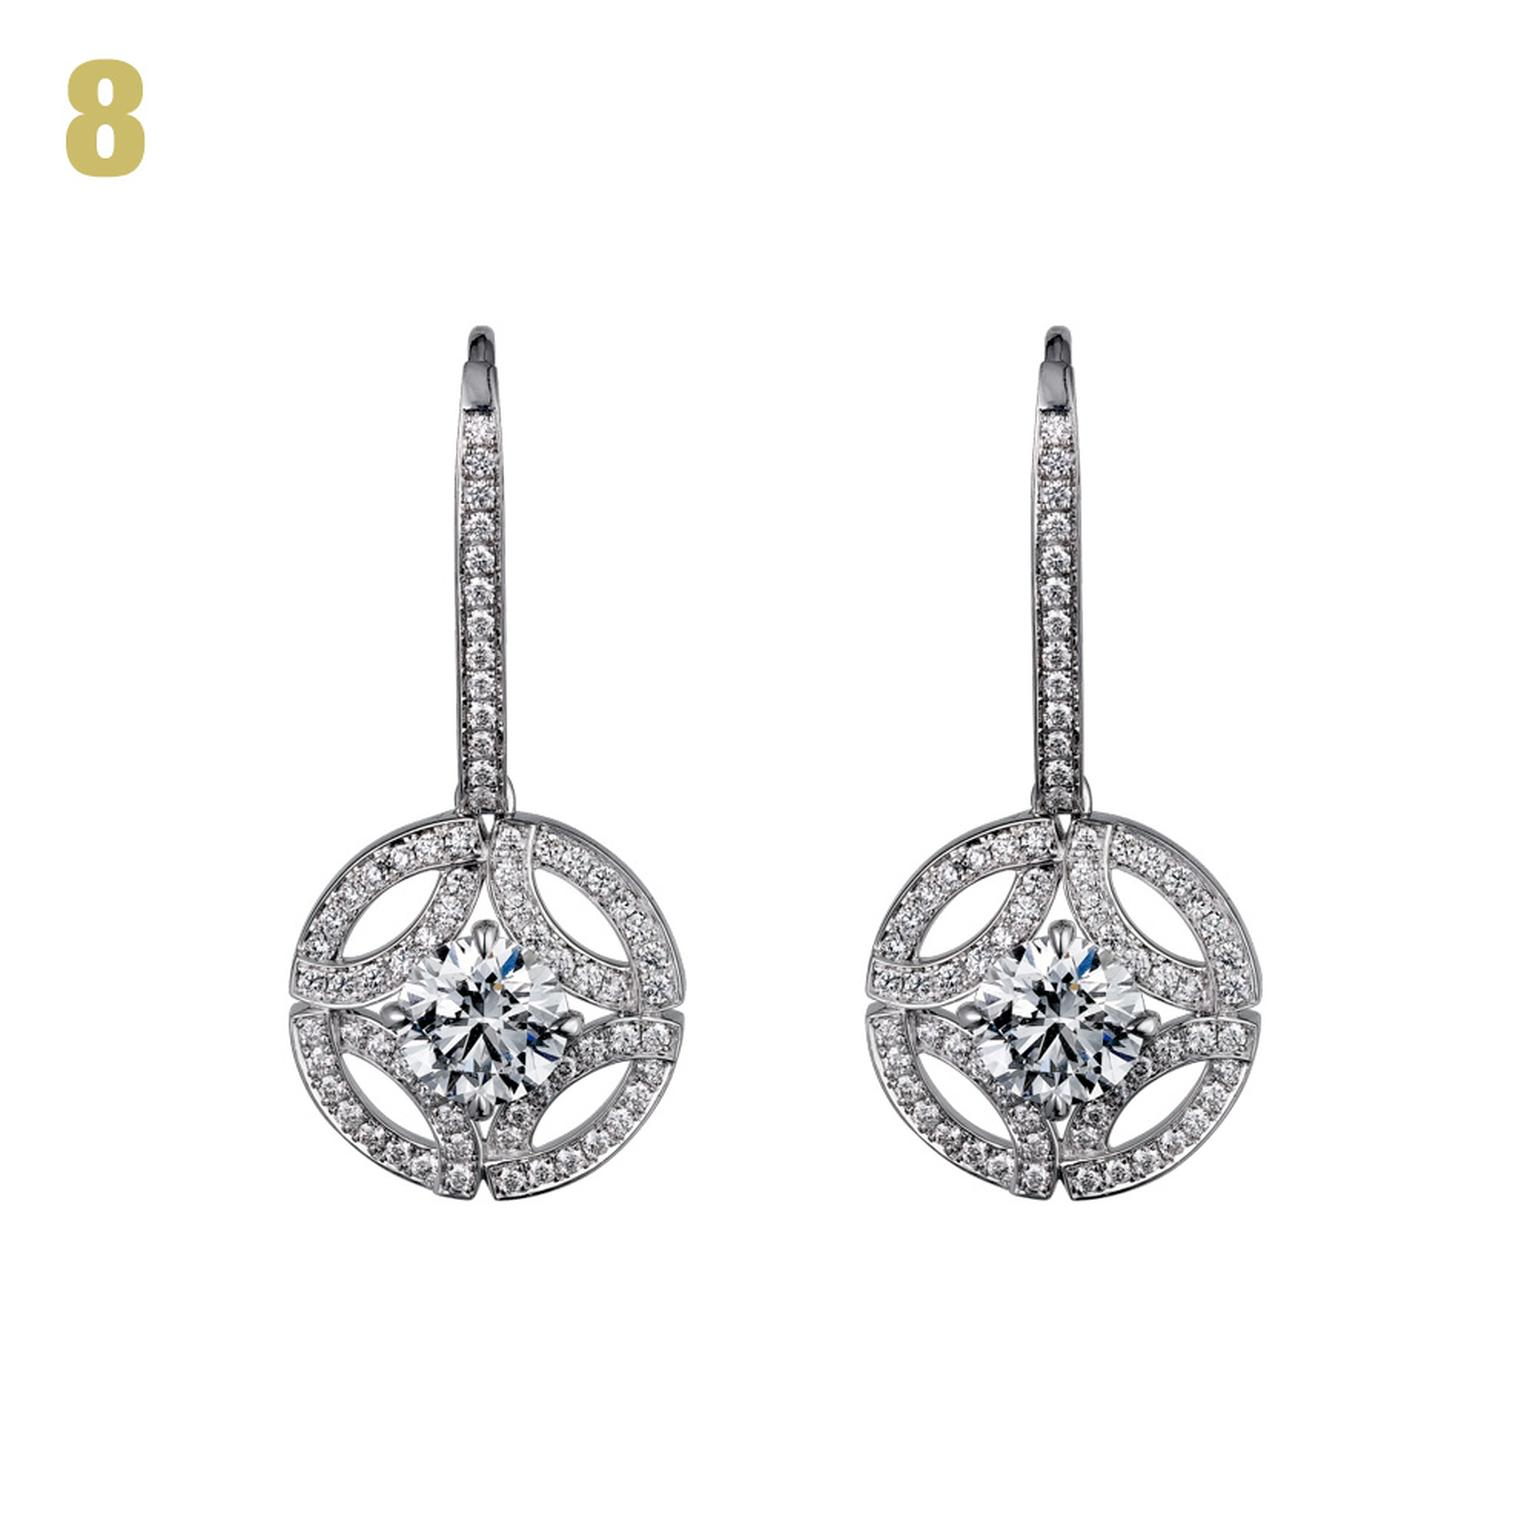 Galanterie de Cartier diamond earrings